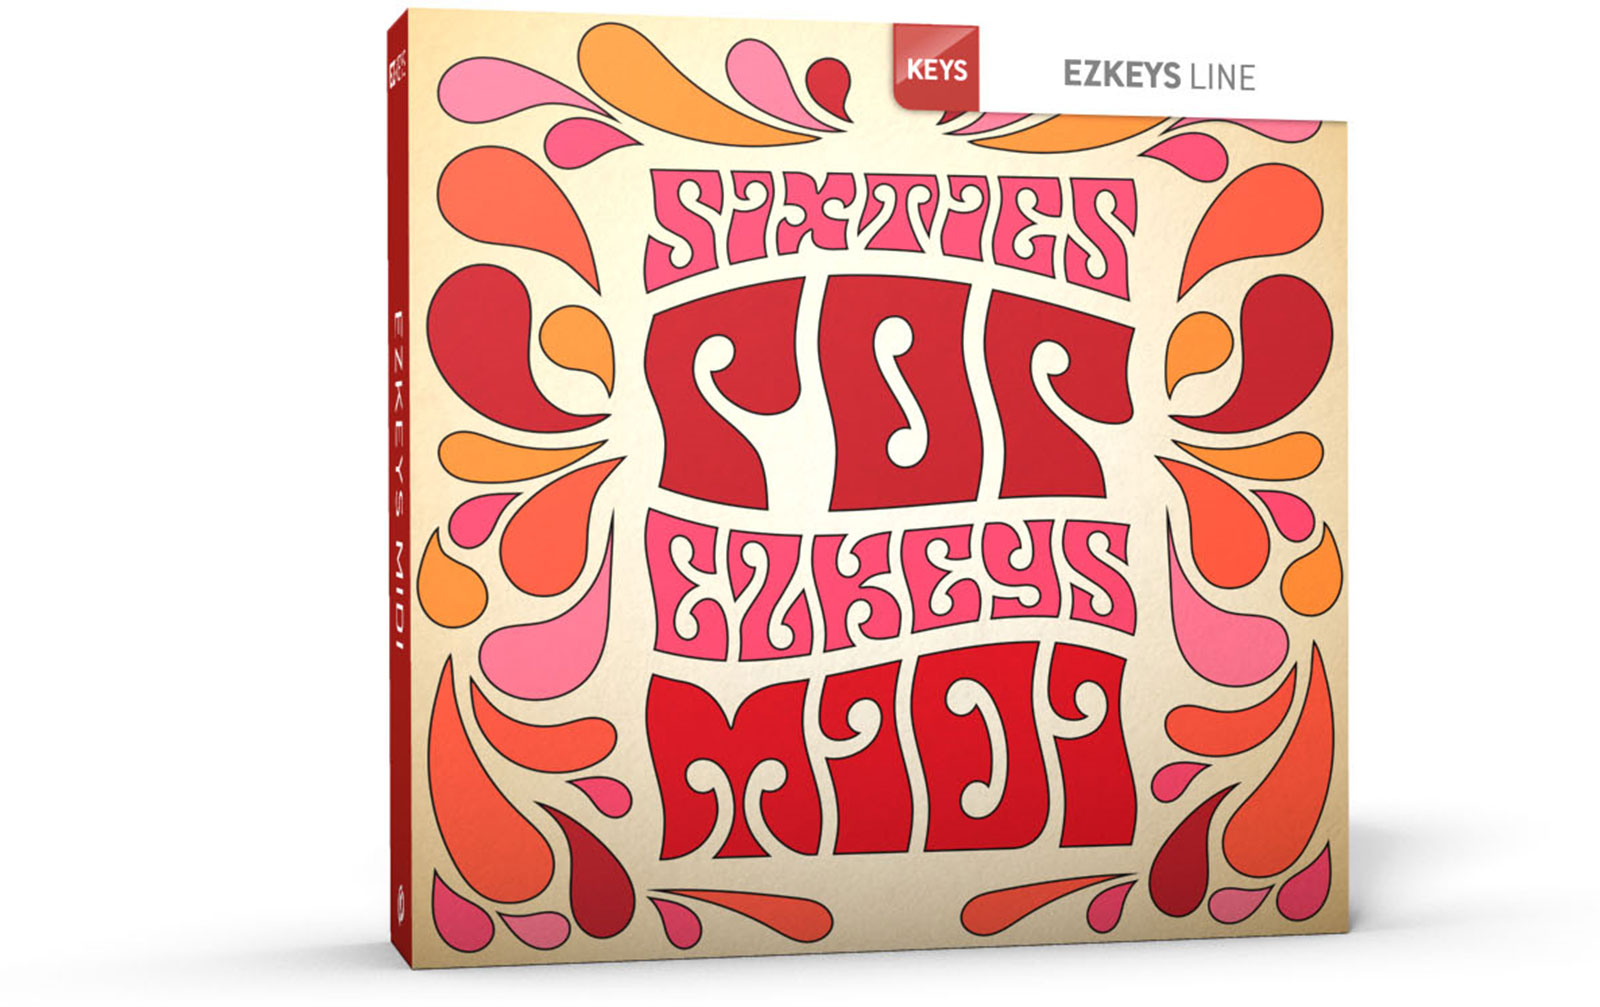 toontrack-ezkeys-sixties-pop-midi-pack-licence-key-